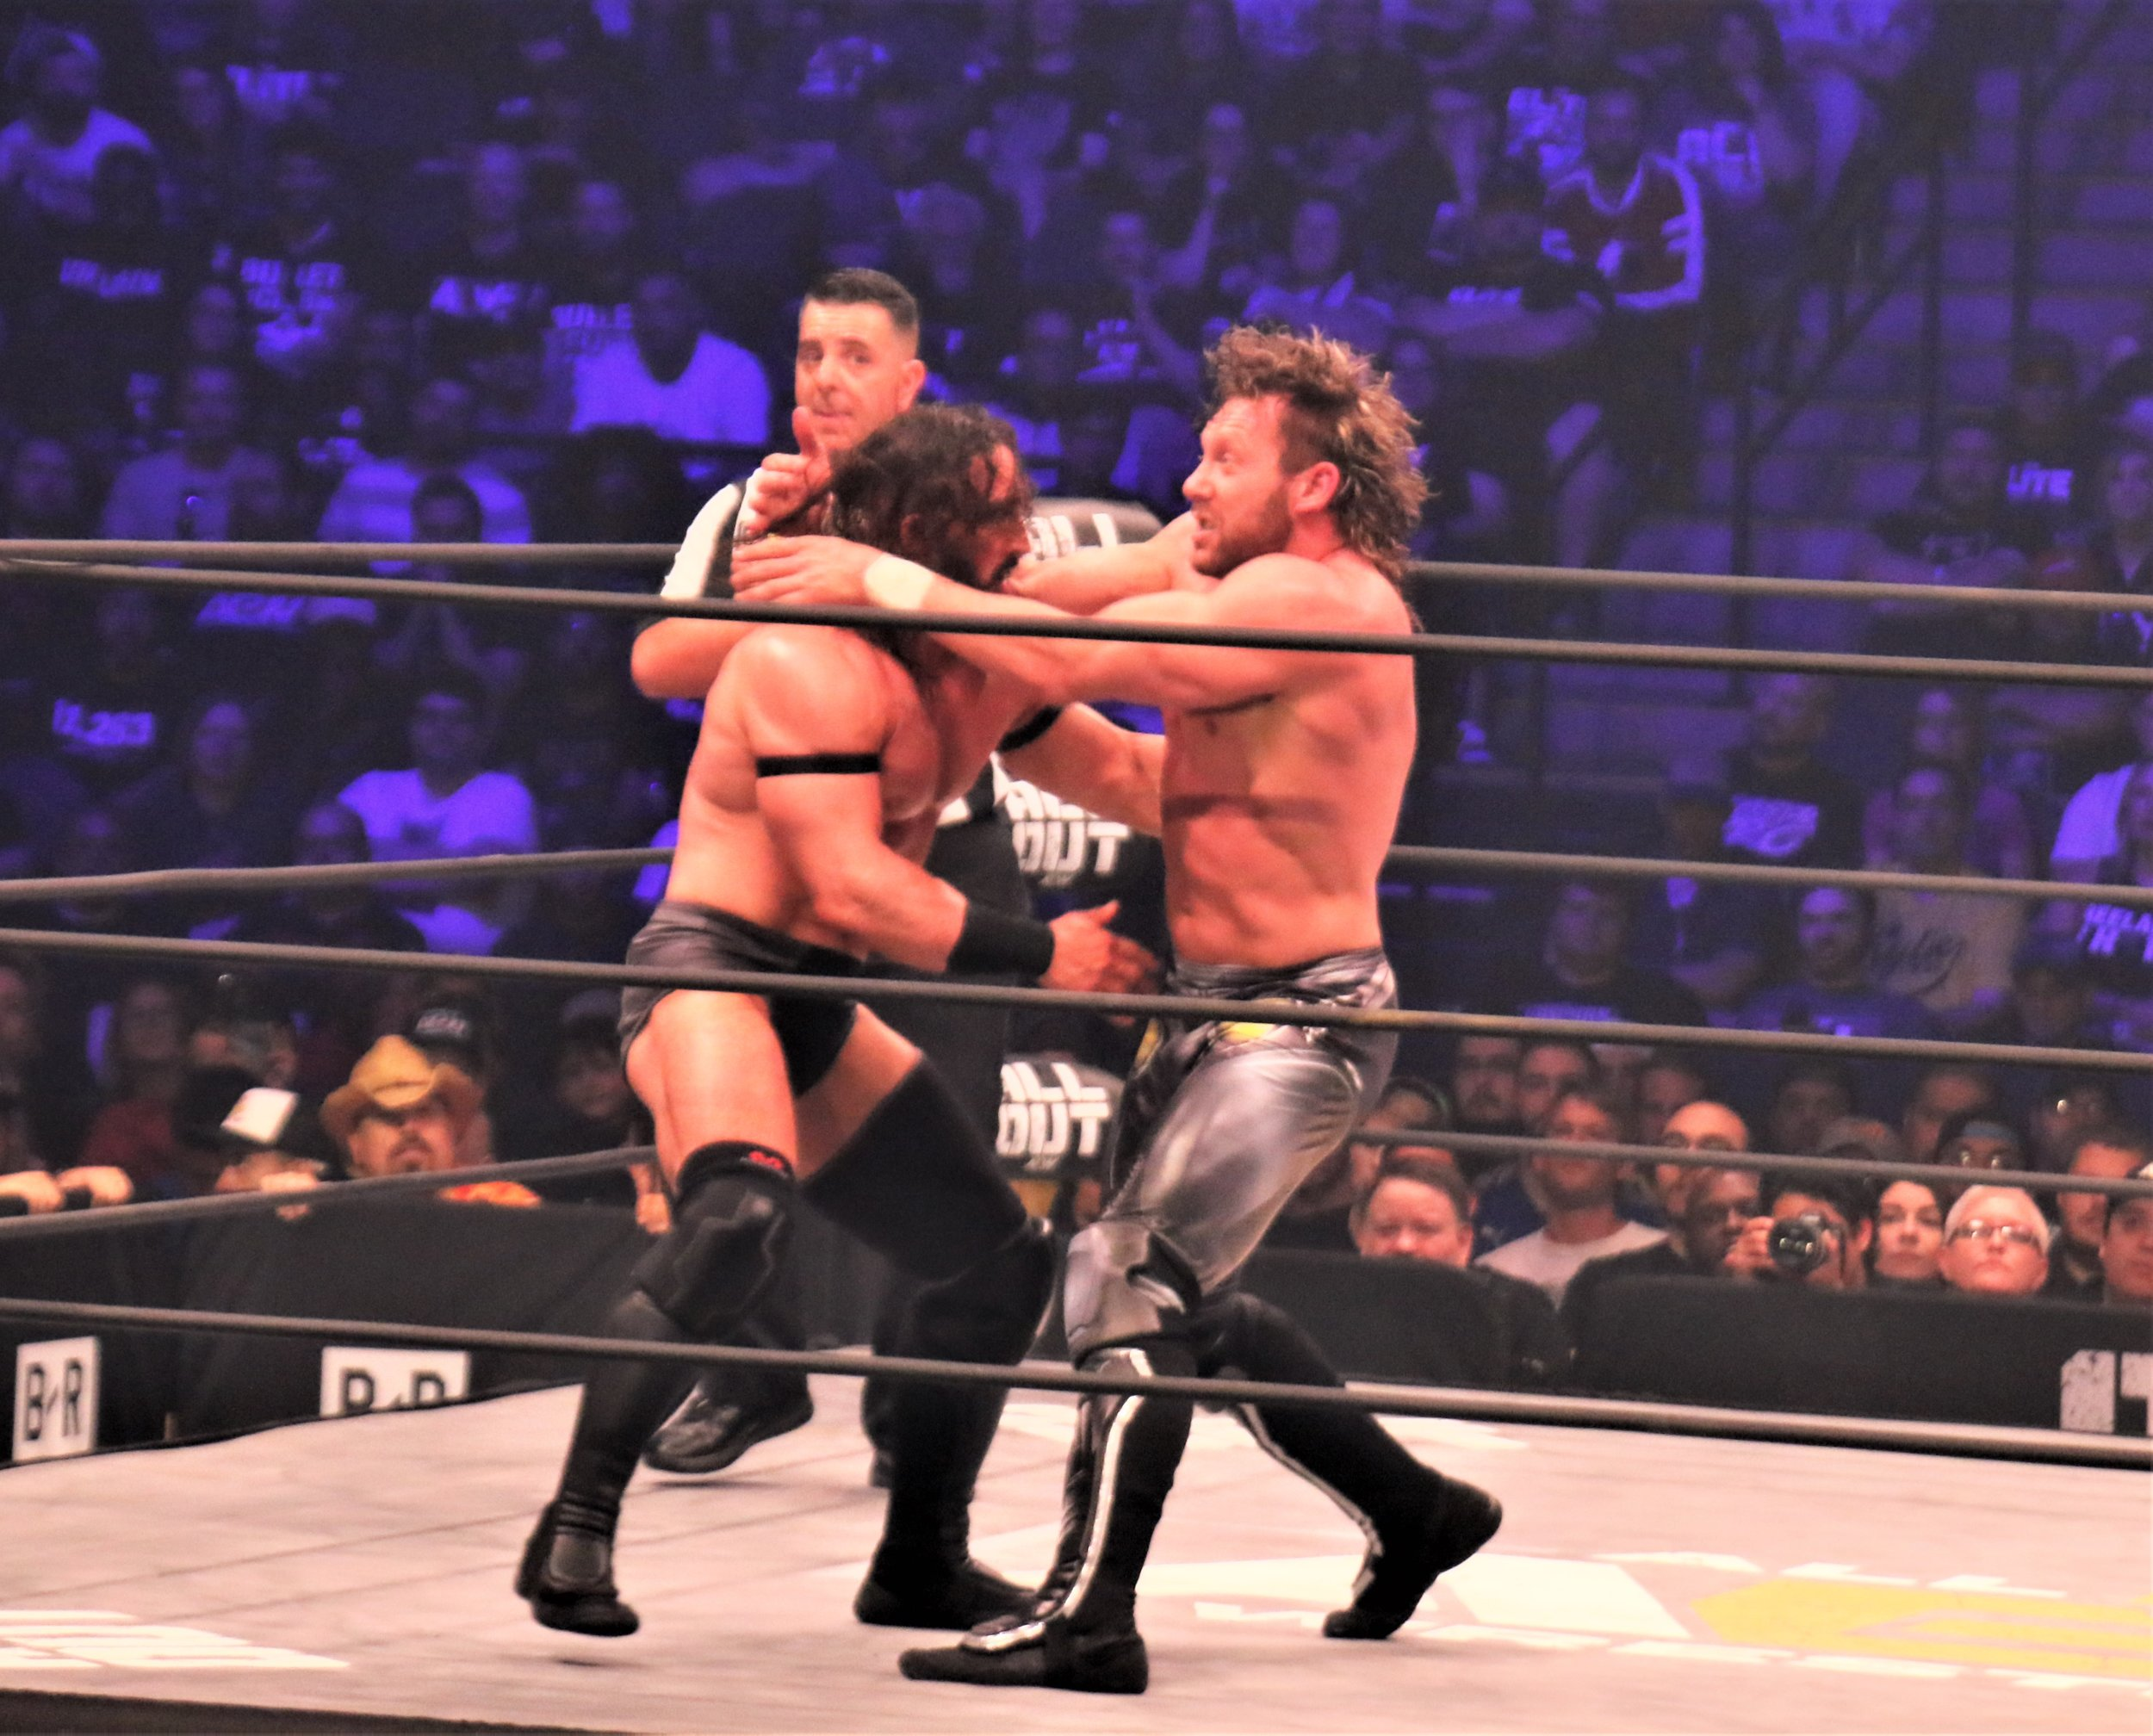 PAC, left, and Kenny Omega slug it out in what arguably was the best match of the night, in which PAC pulled off the upset.  (Photo by Mike Pankow)